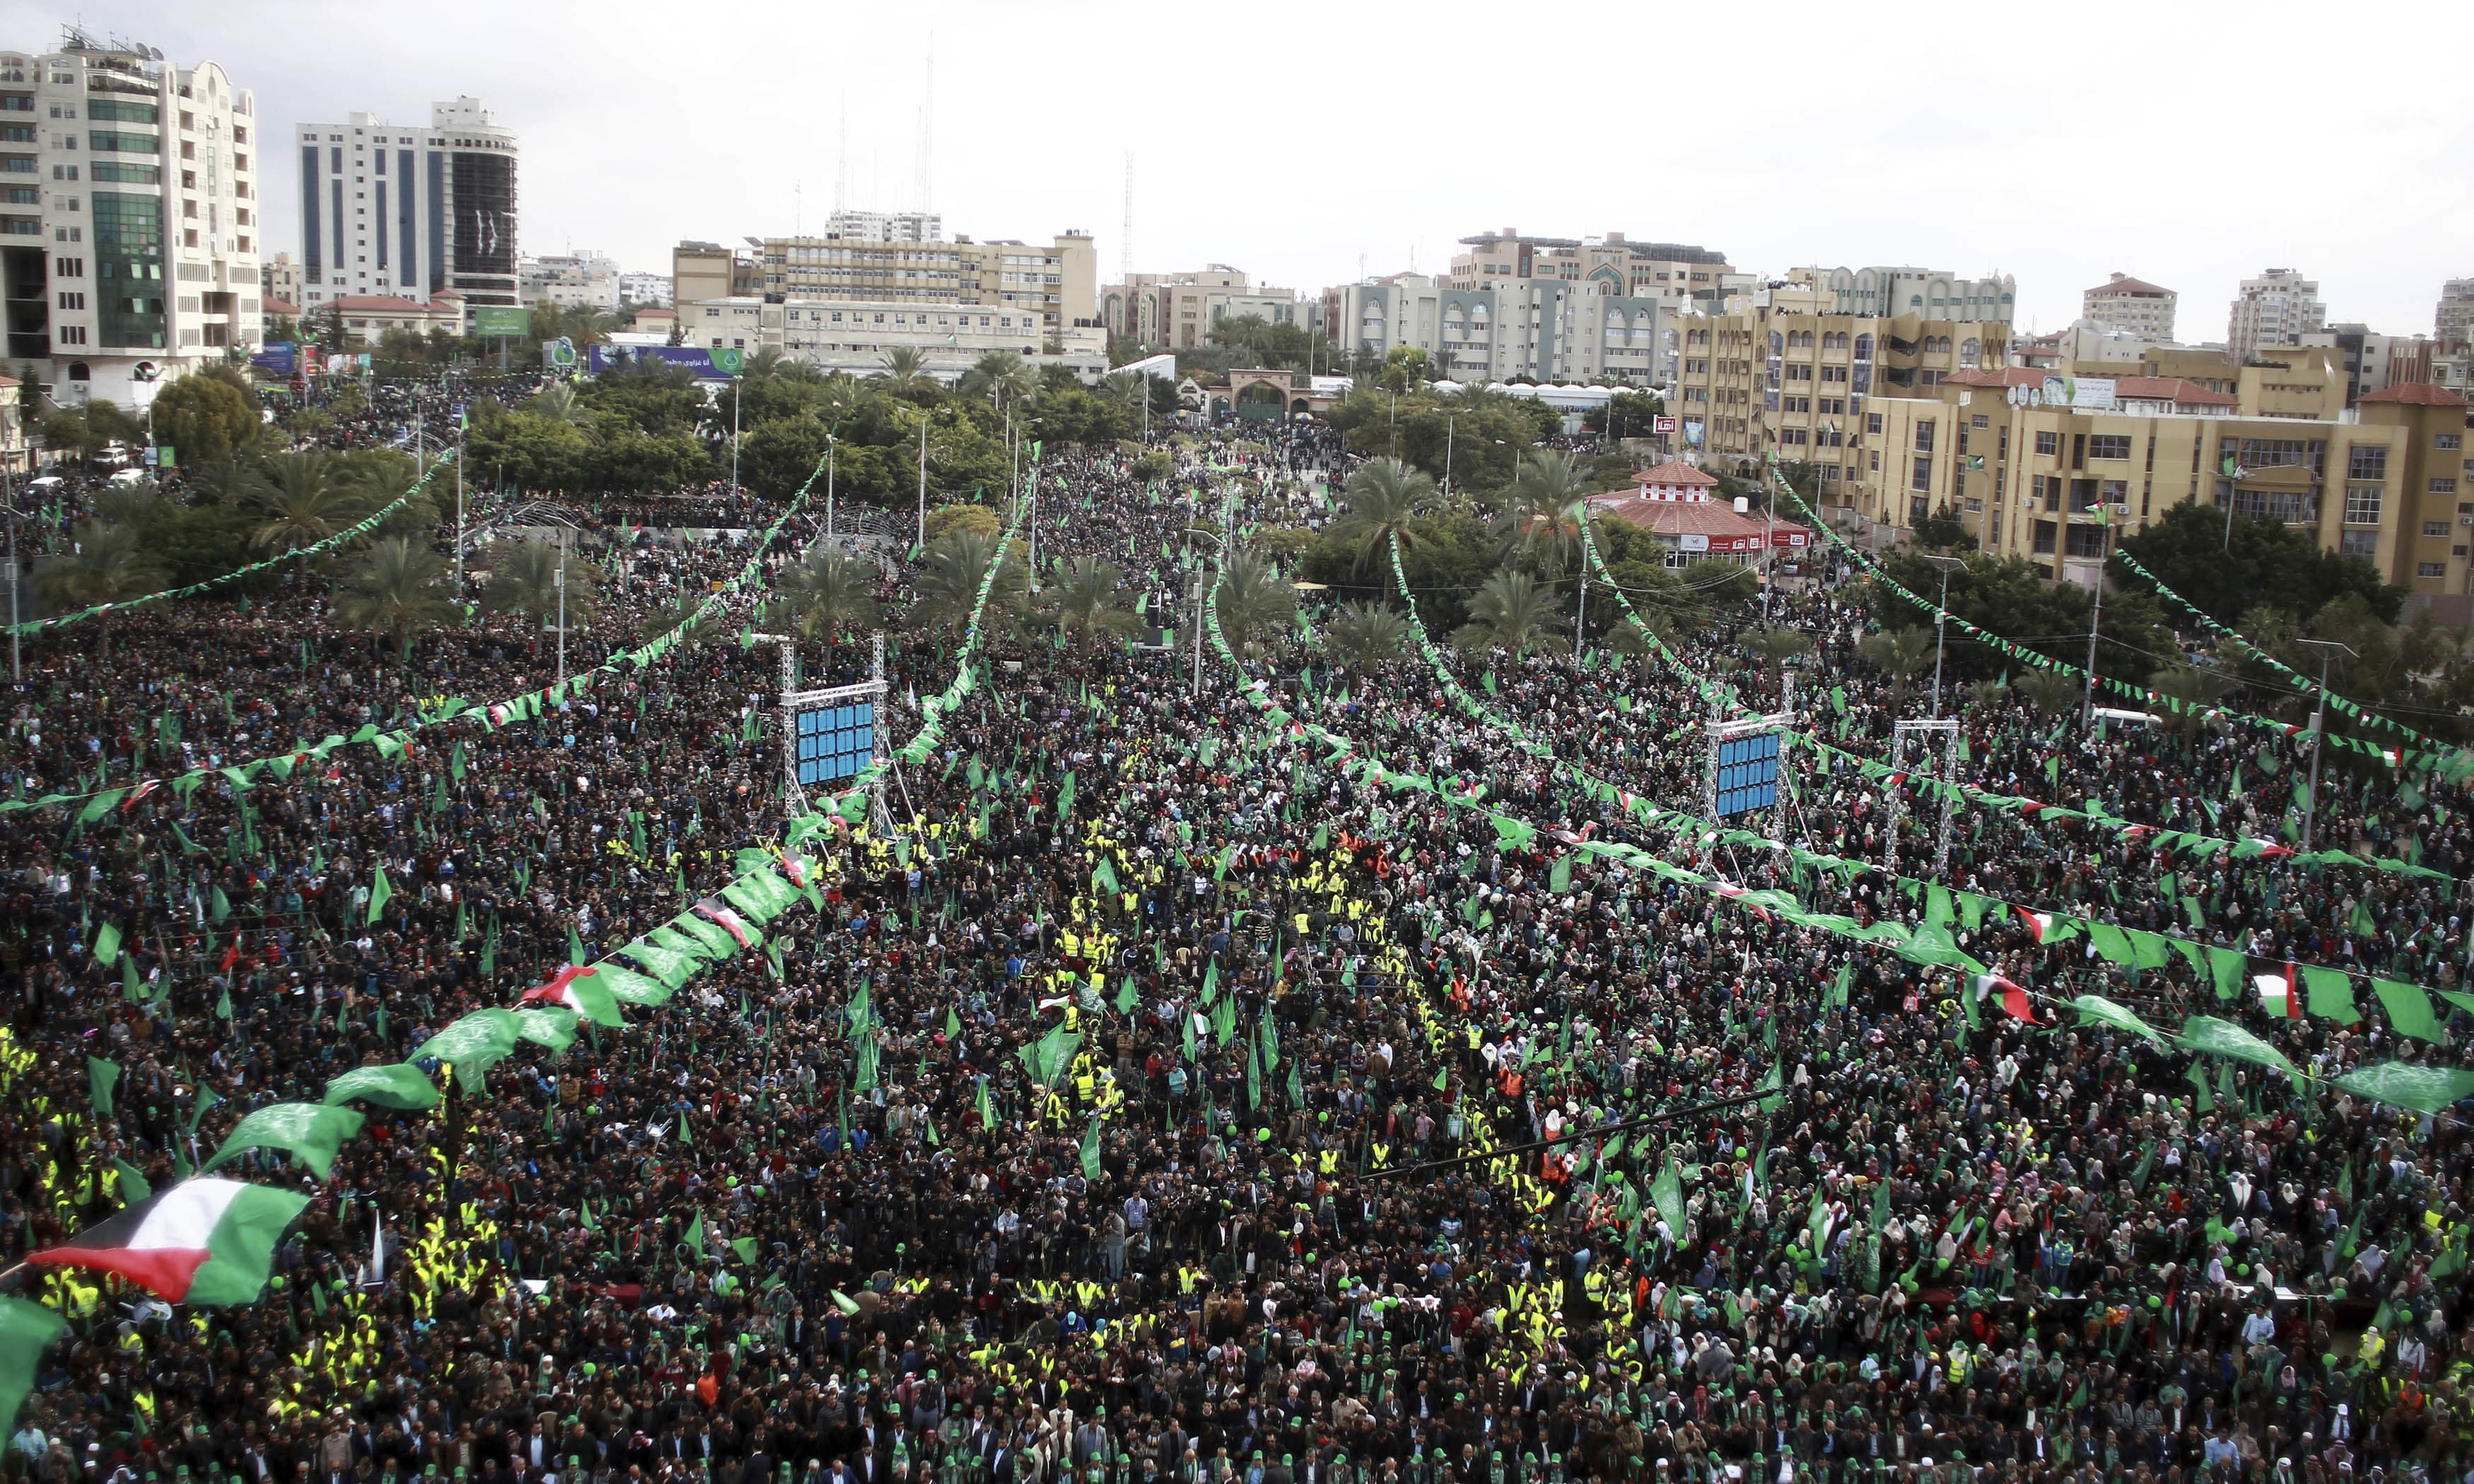 Supporters attend a Rally marking the 30th anniversary of Hamas movement, in Gaza City. —AP